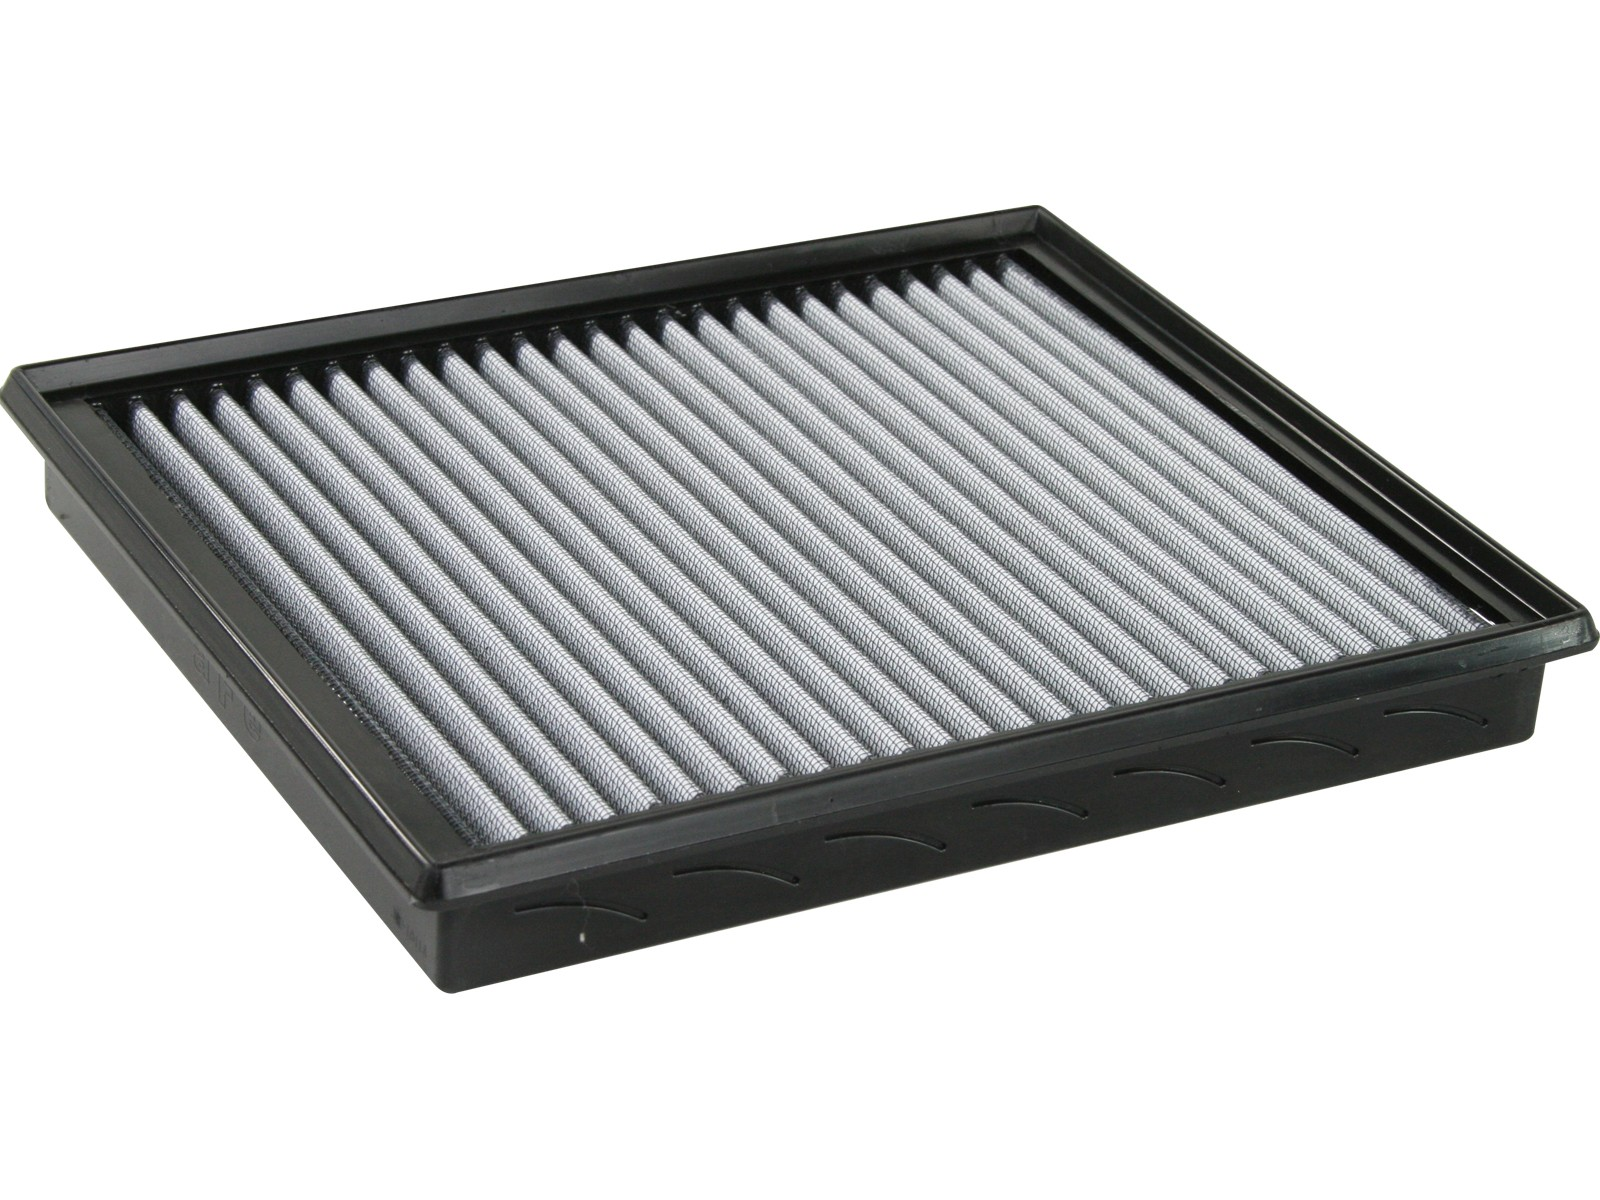 aFe POWER 31-10117 Magnum FLOW Pro DRY S Air Filter